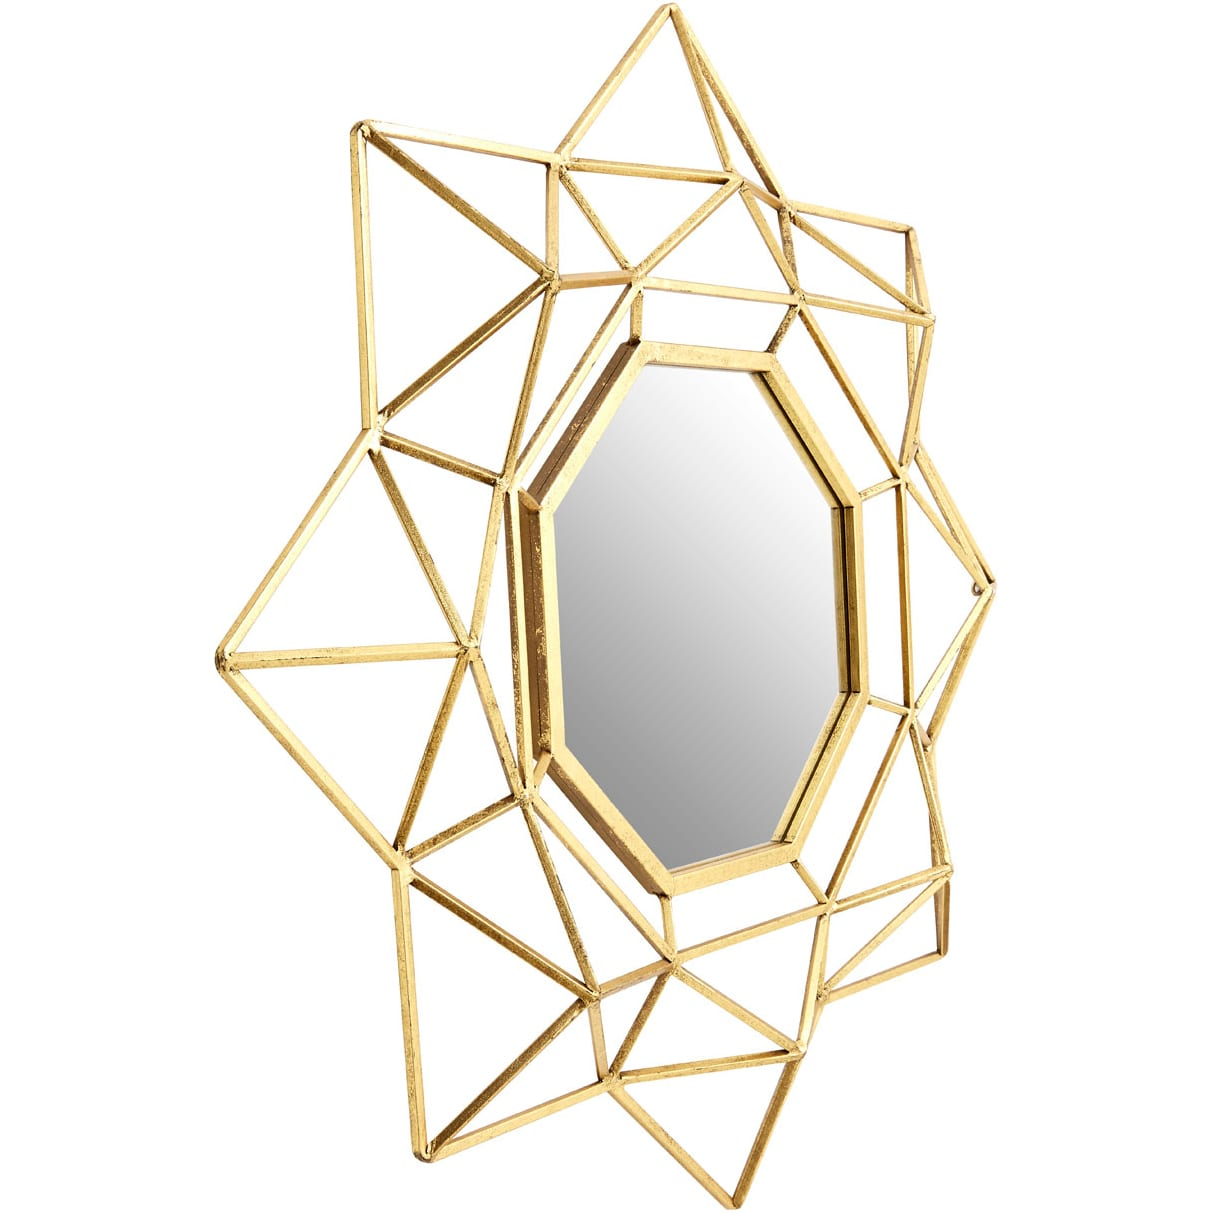 Toulon 2 Sided Wall Mirror